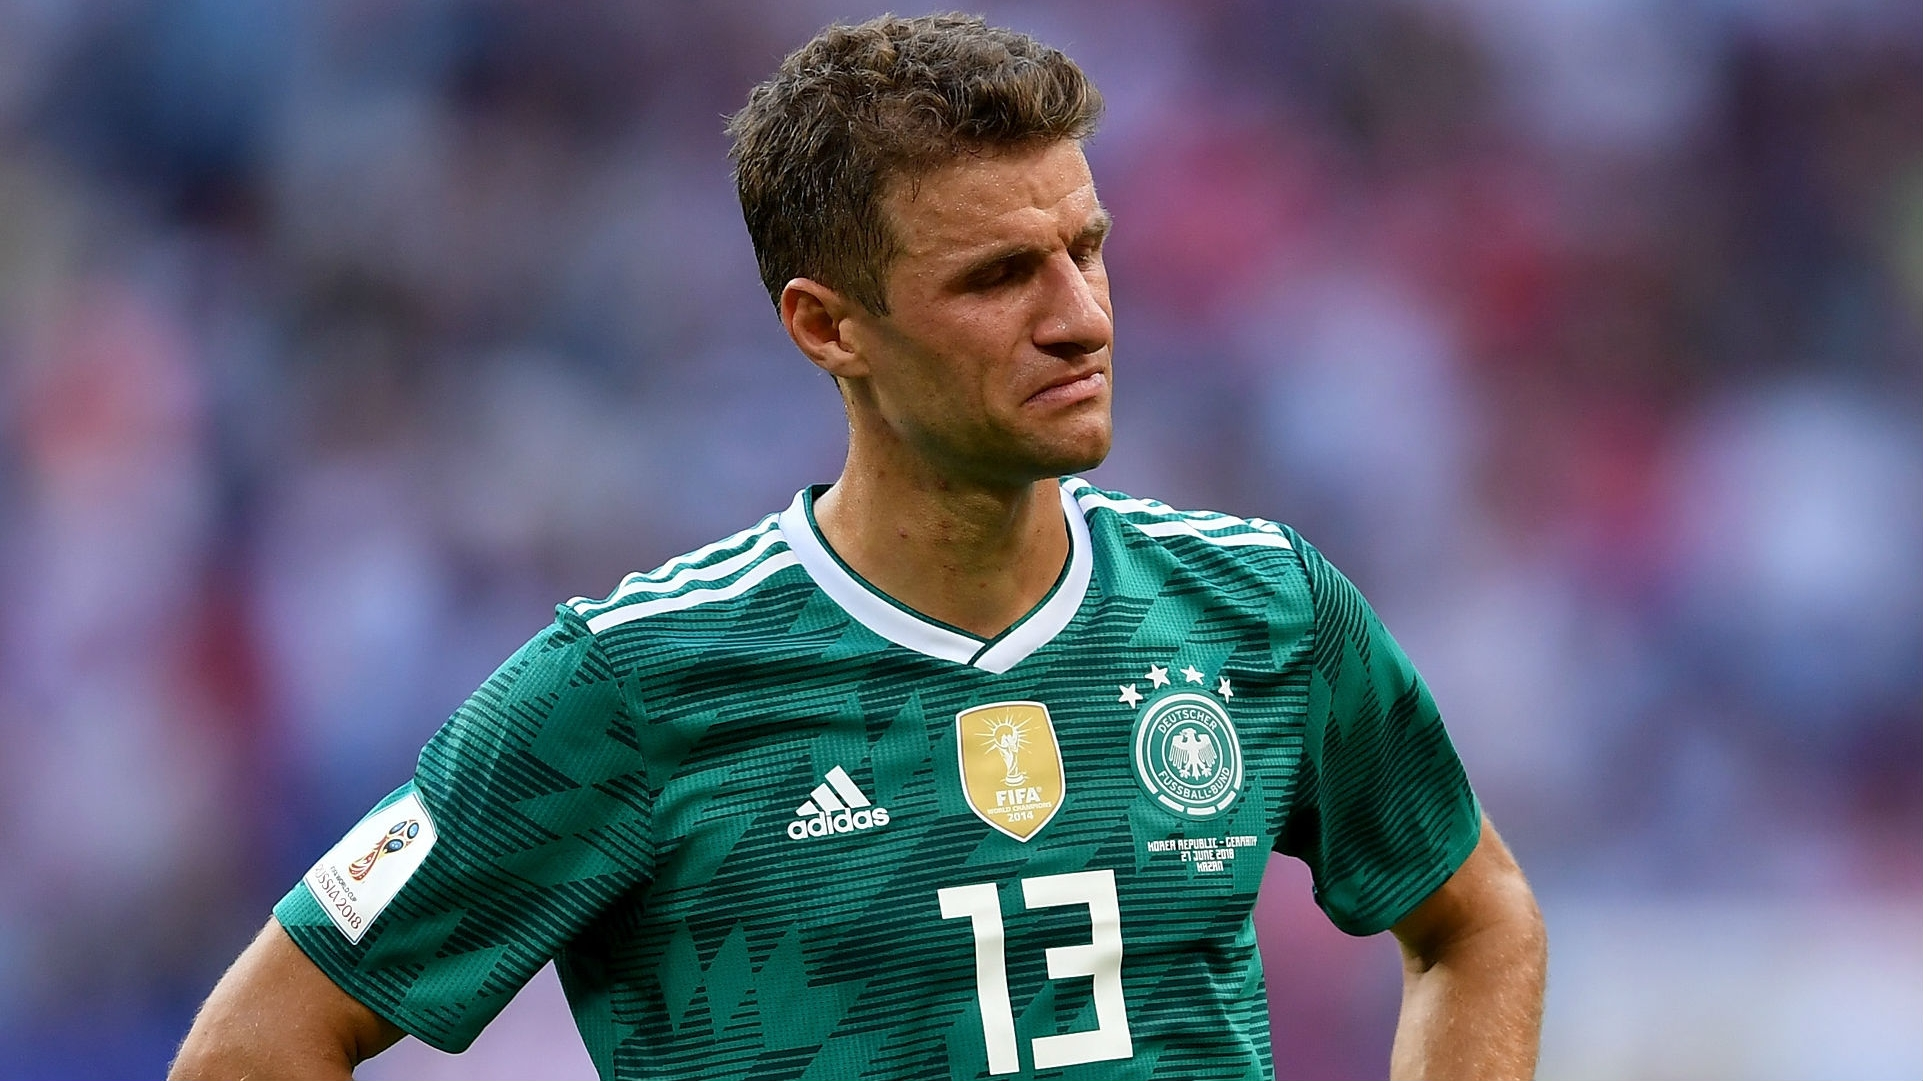 A new Low! Historic Humiliation for Germany as champions knocked out